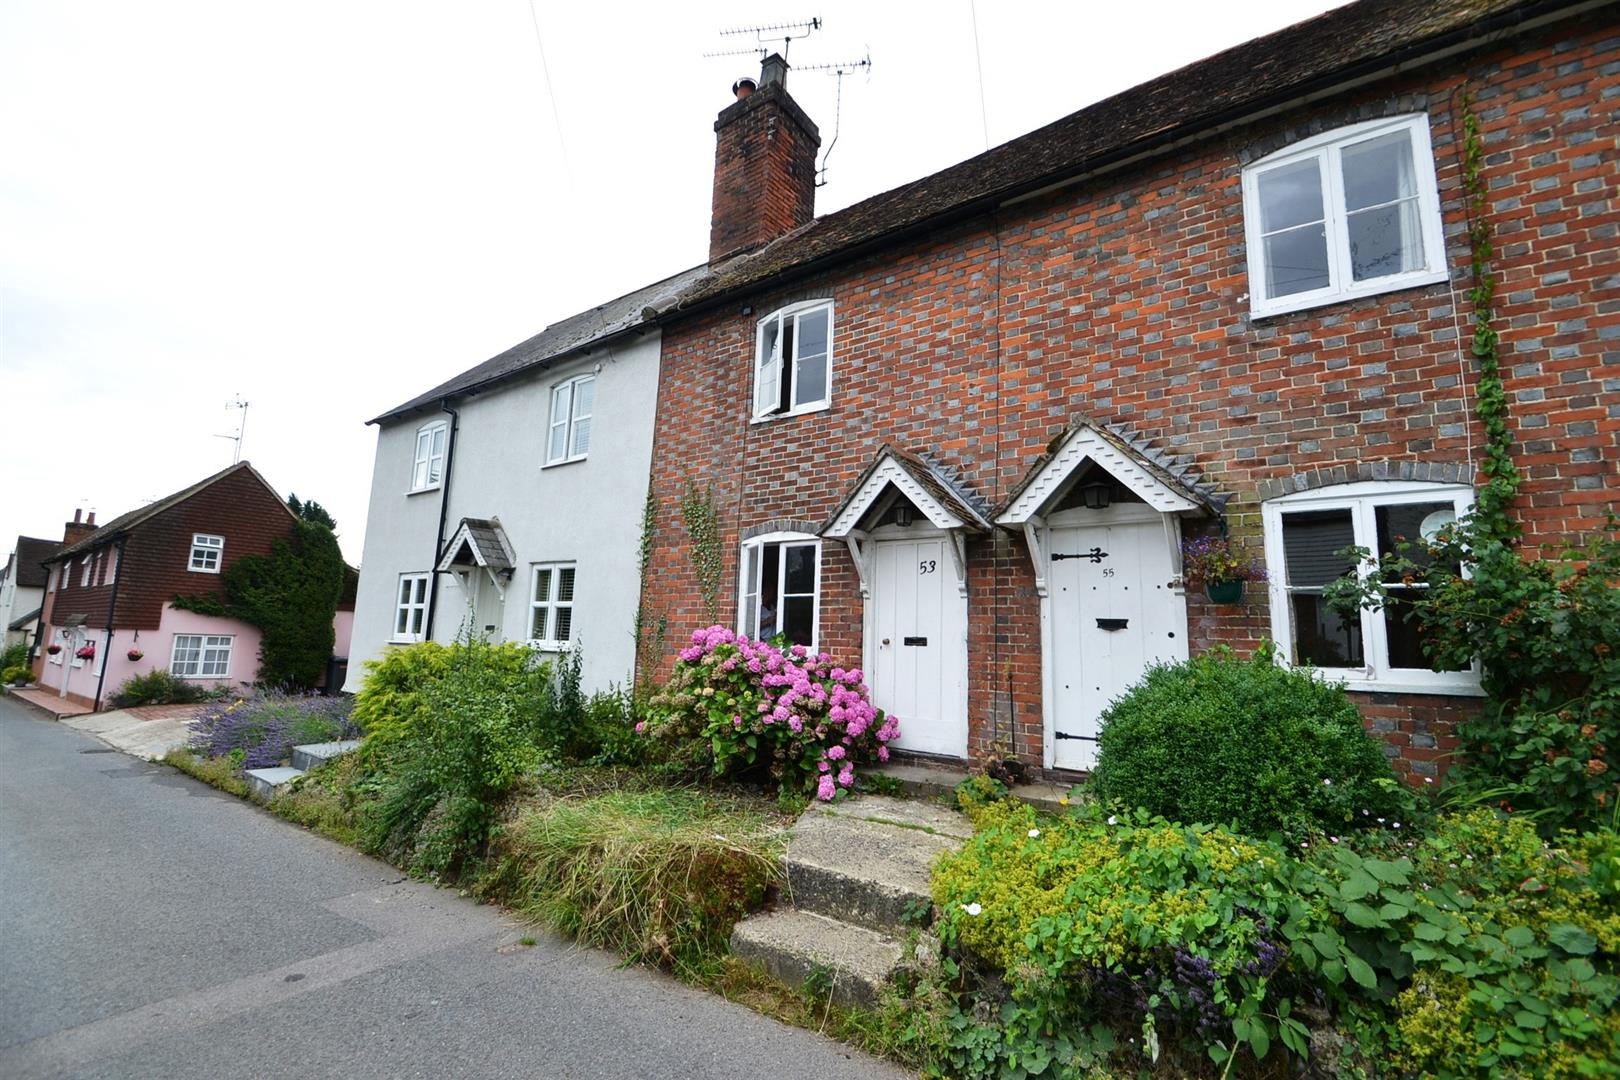 2 Bedrooms Terraced House for rent in Old Road, Wateringbury